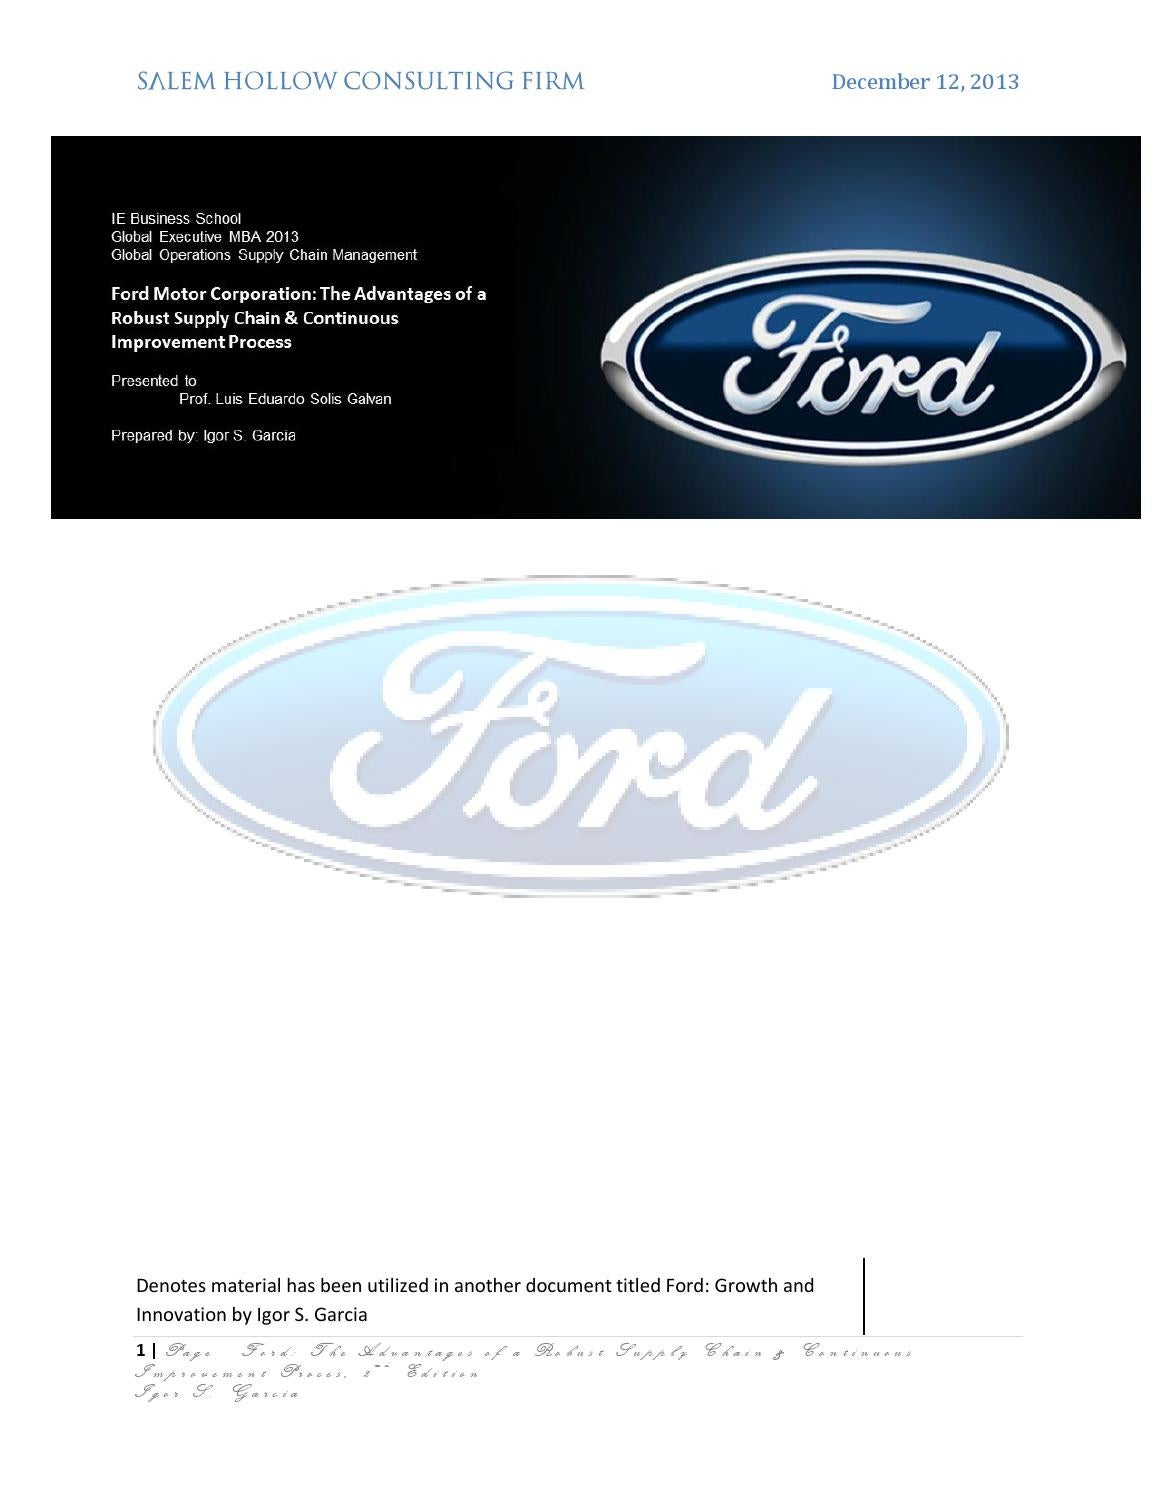 Ford supply chain management best chain 2018 for Ford motor company powerpoint template